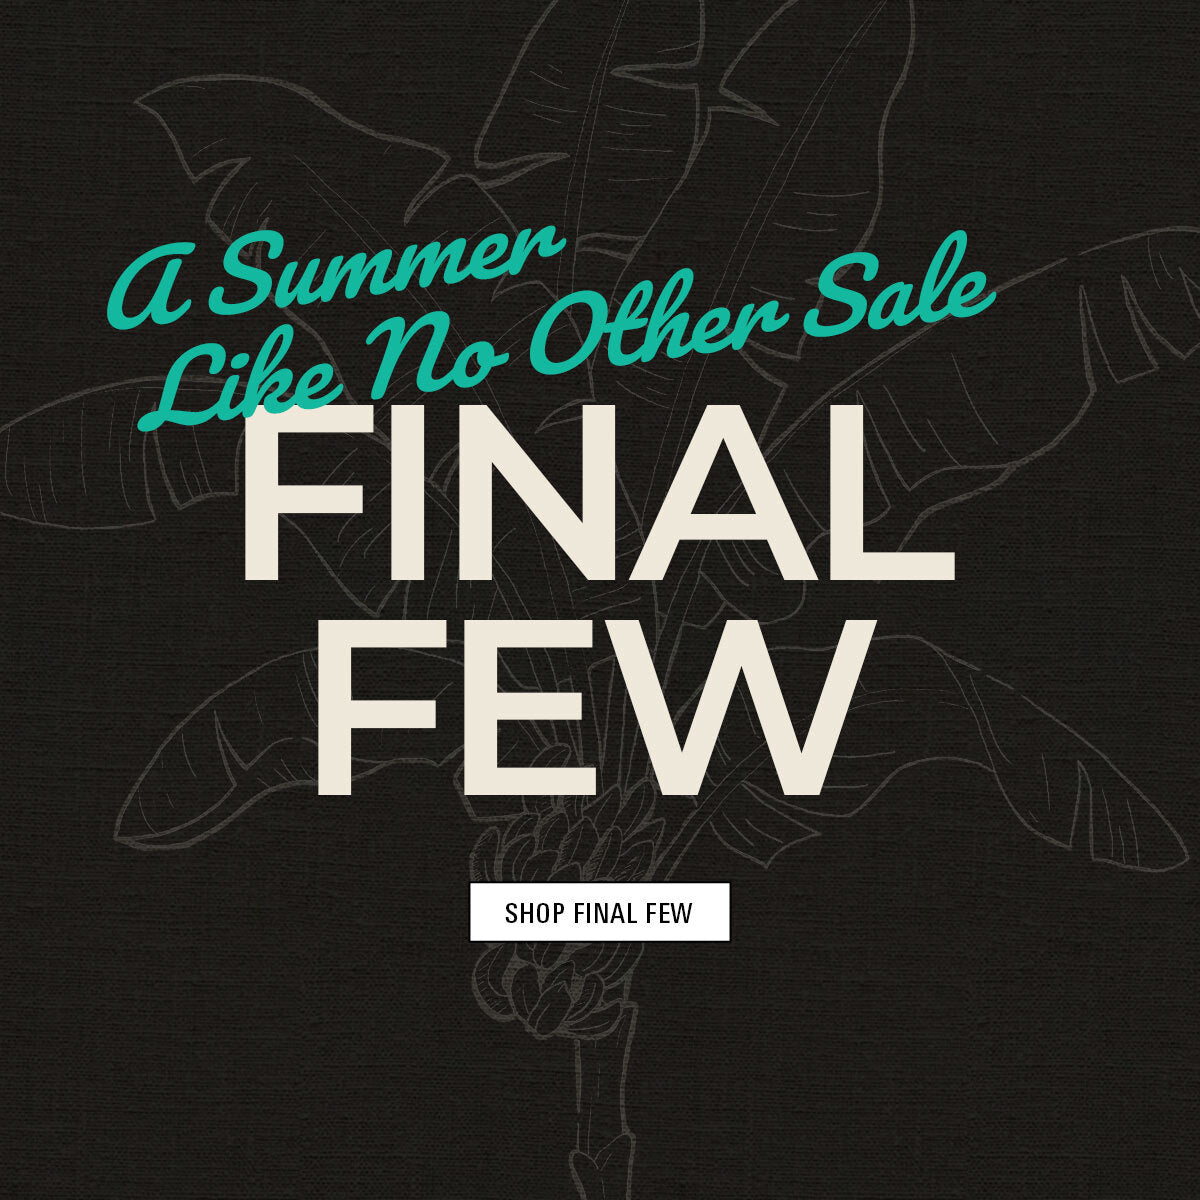 A summer like no other sale: final few shop now.